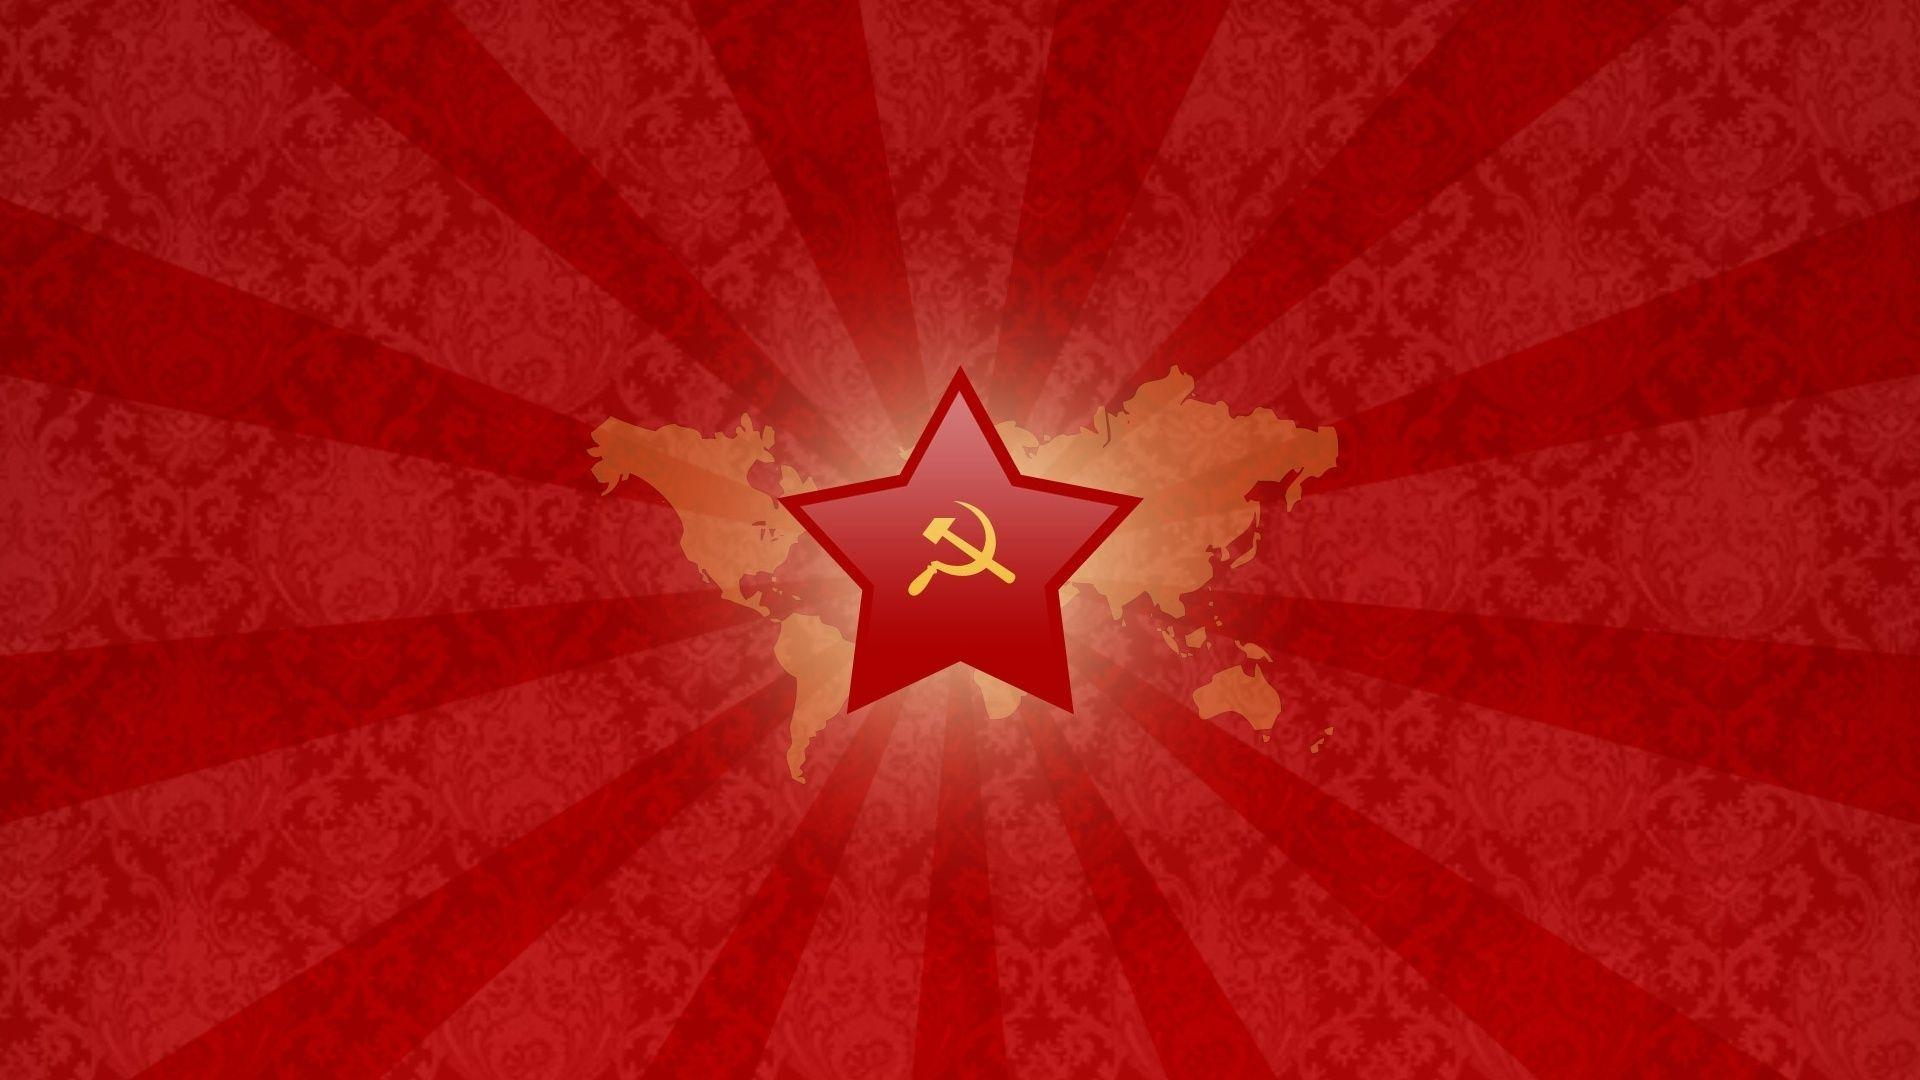 soviet union wallpapers, desktop wallpapers » GoodWP